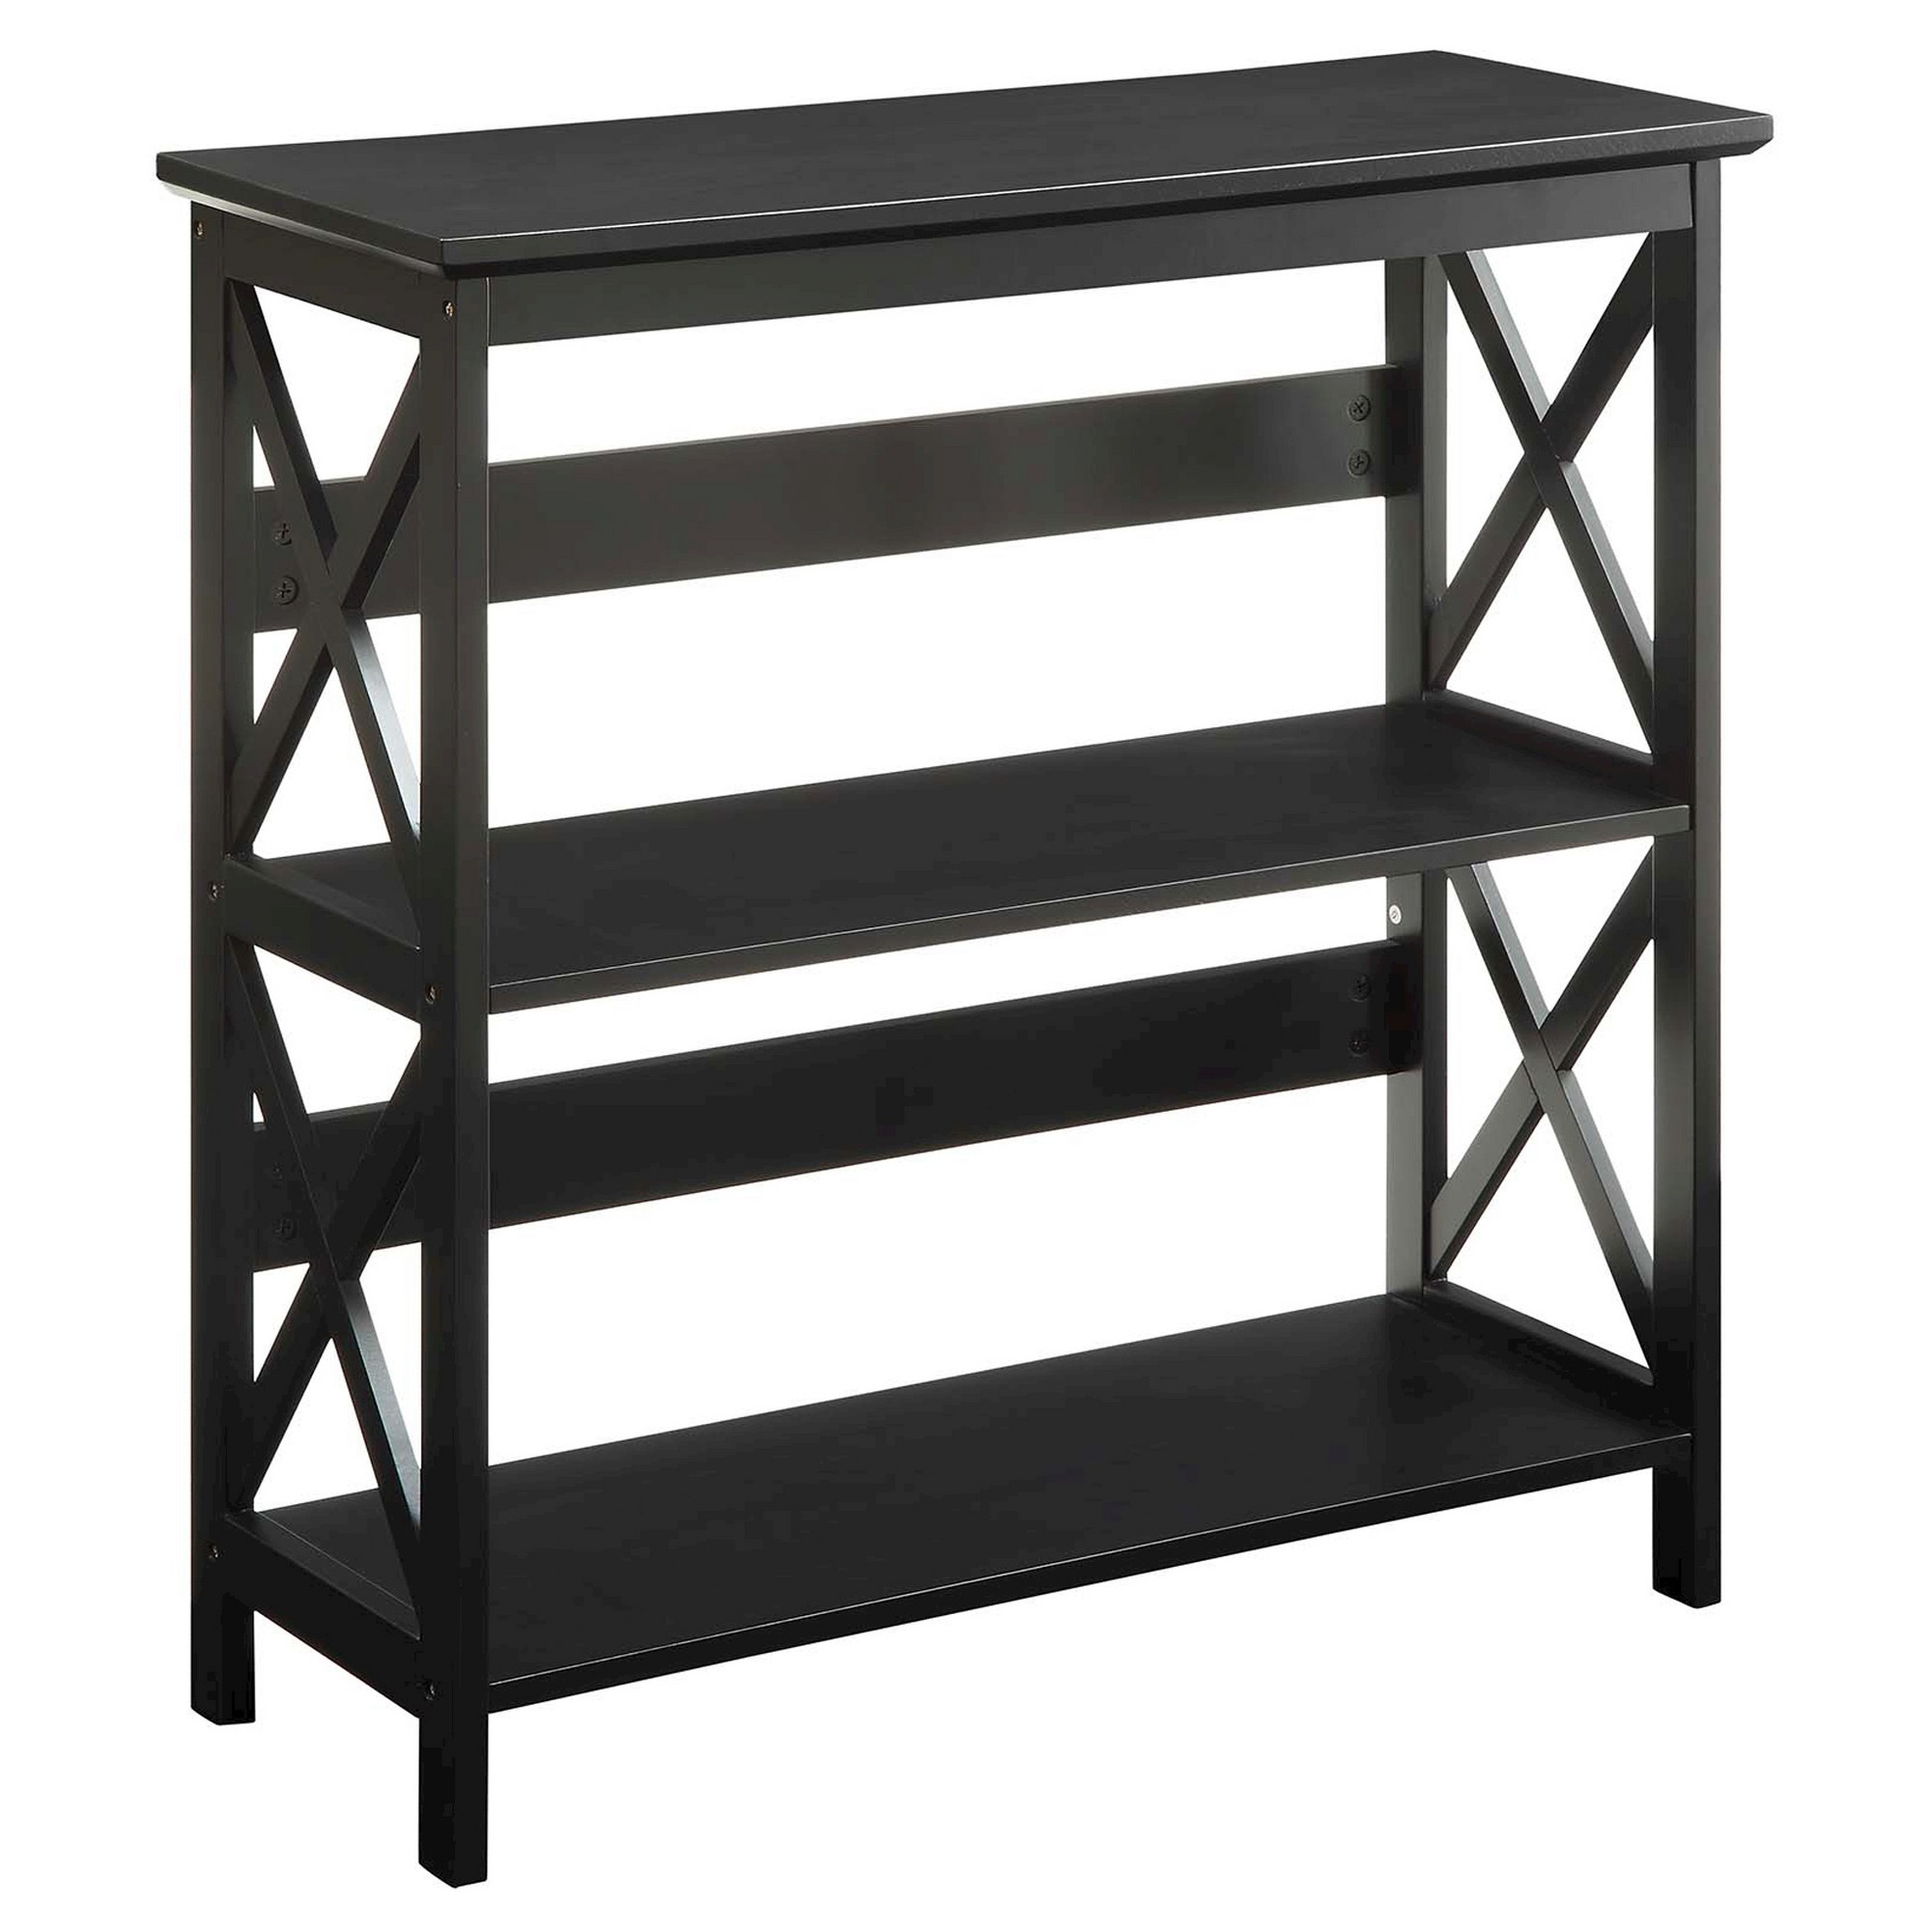 bookcase qlt hei bookcases p concepts tier shelf glass convenience by prod classic wid spin